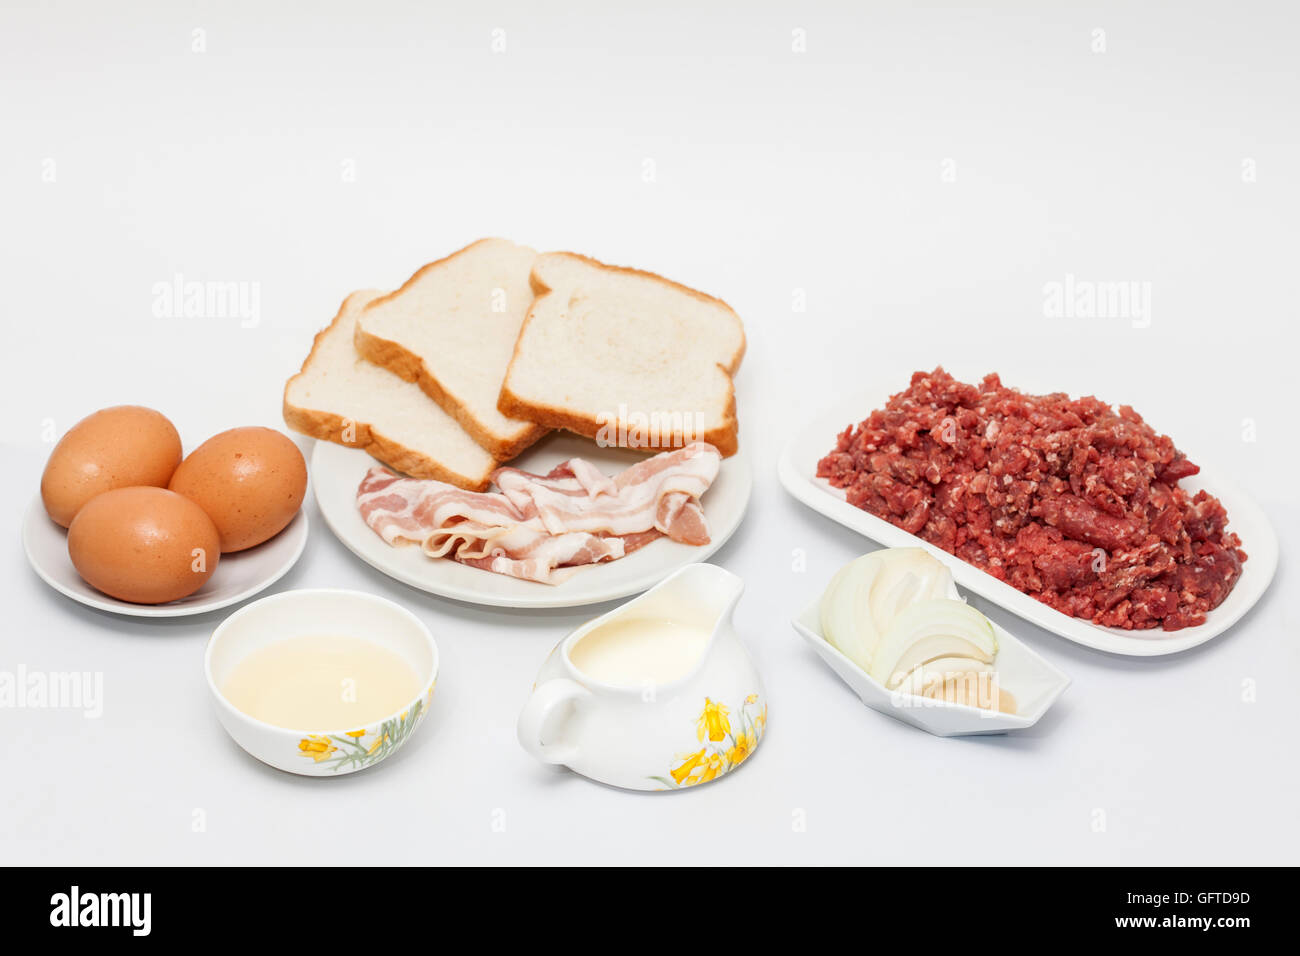 Meatloaf Stock Photos & Meatloaf Stock Images - Alamy